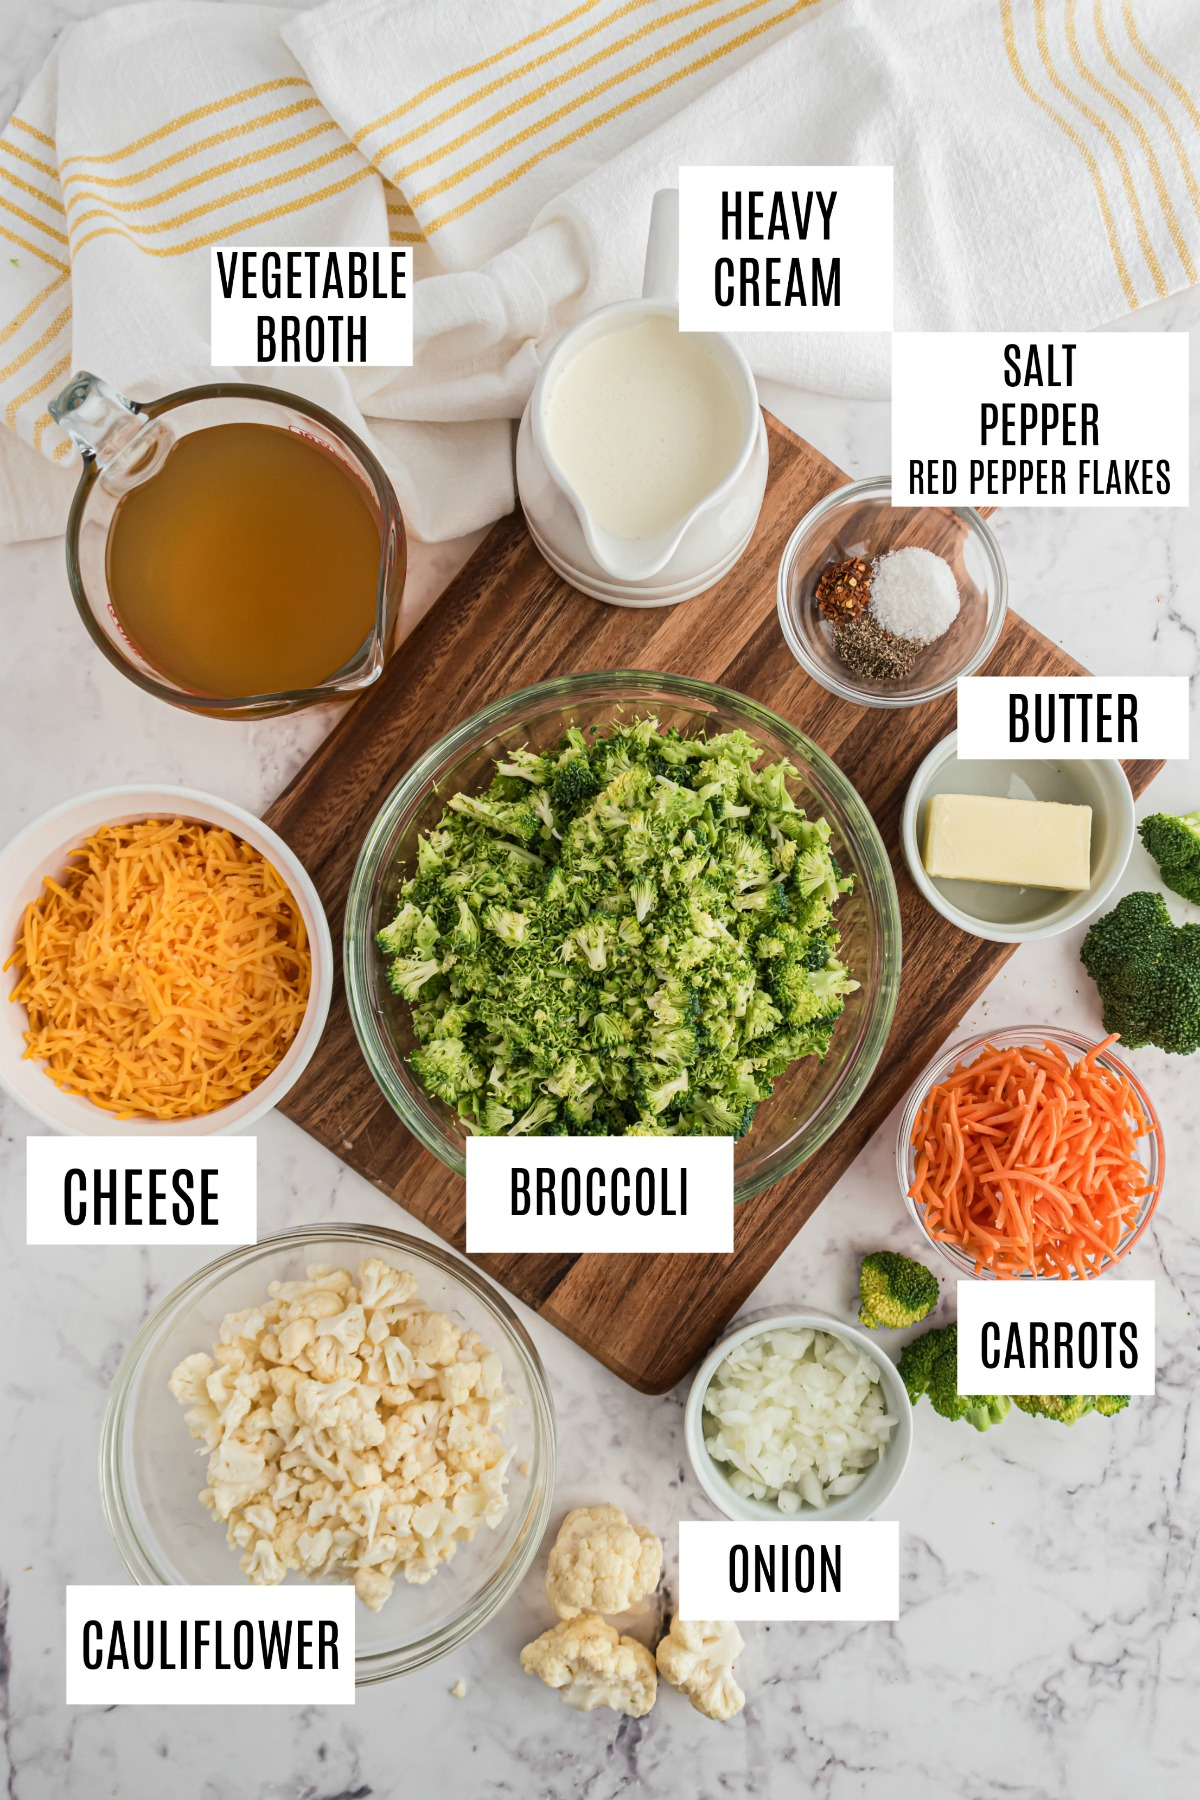 Ingredients needed to make gluten free broccoli cheese soup.